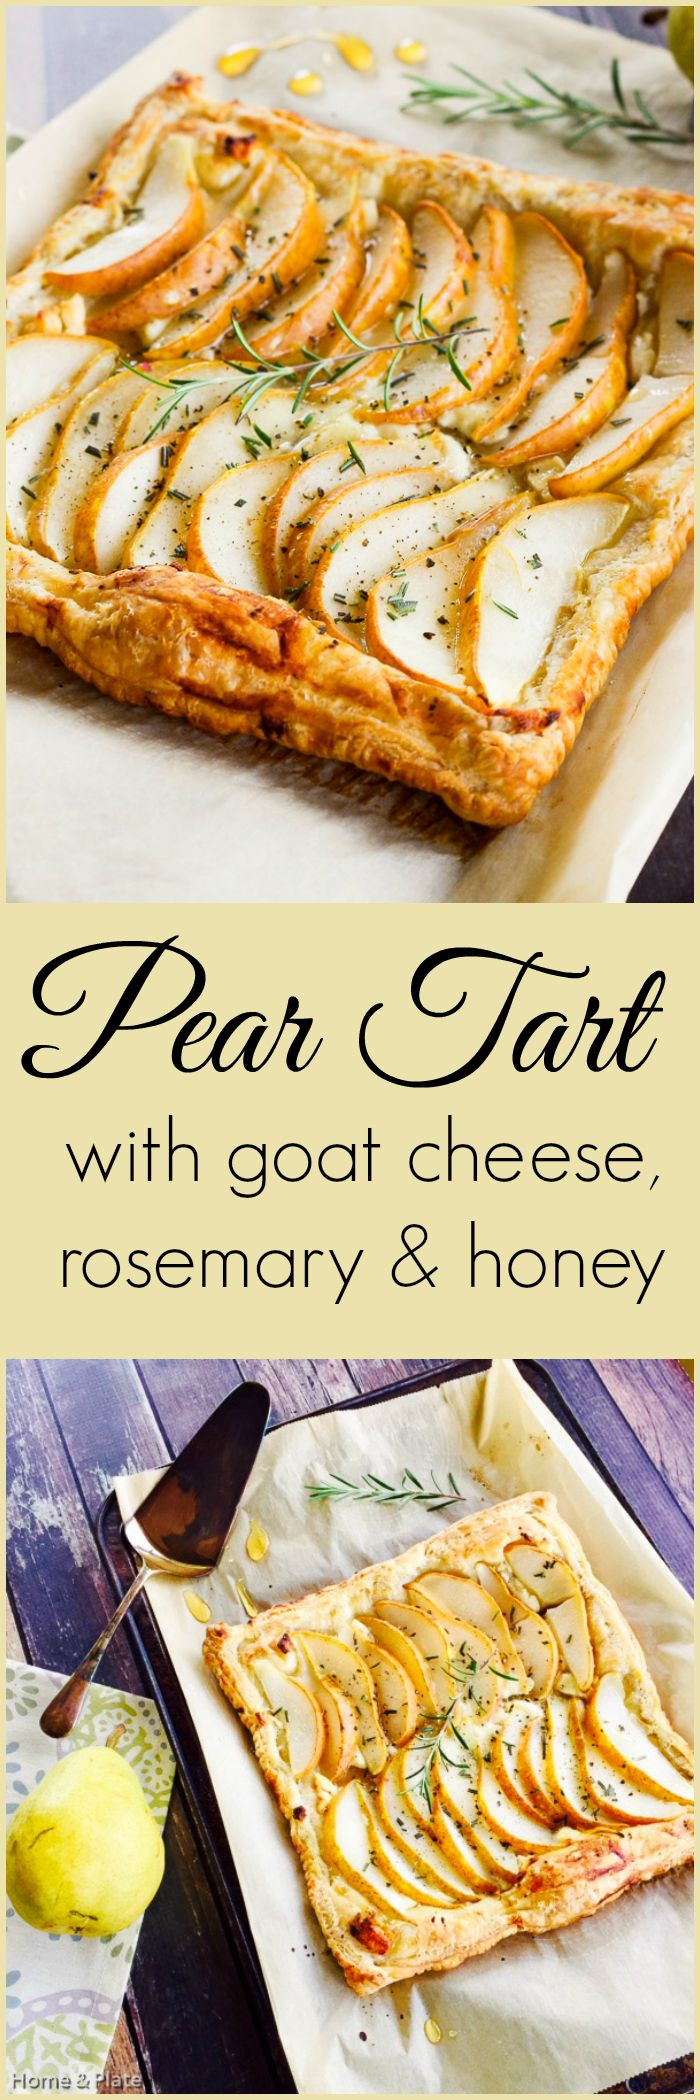 Pear Tart with Goat Cheese, Rosemary & Honey | Home & Plate | www.homeandplate.com | Enjoy sweet pears on this puff pastry tart.